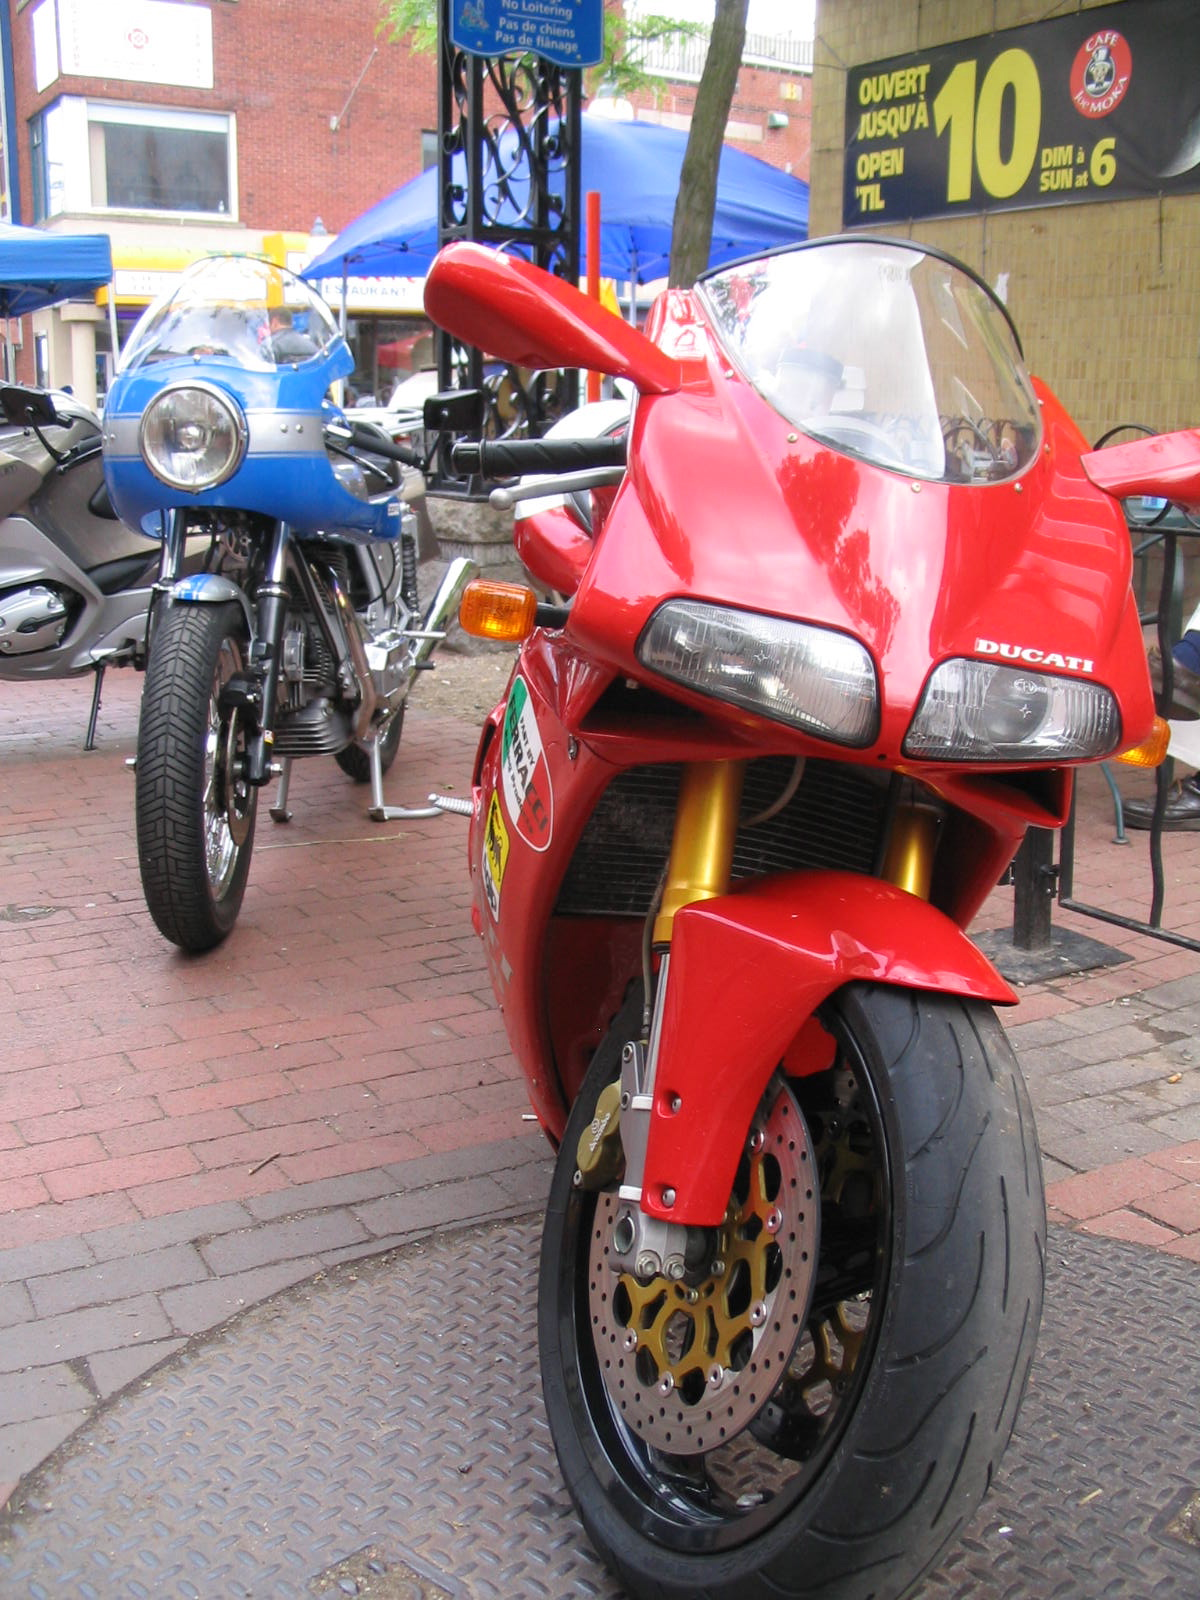 Ducati 916 and 900 SuperSport